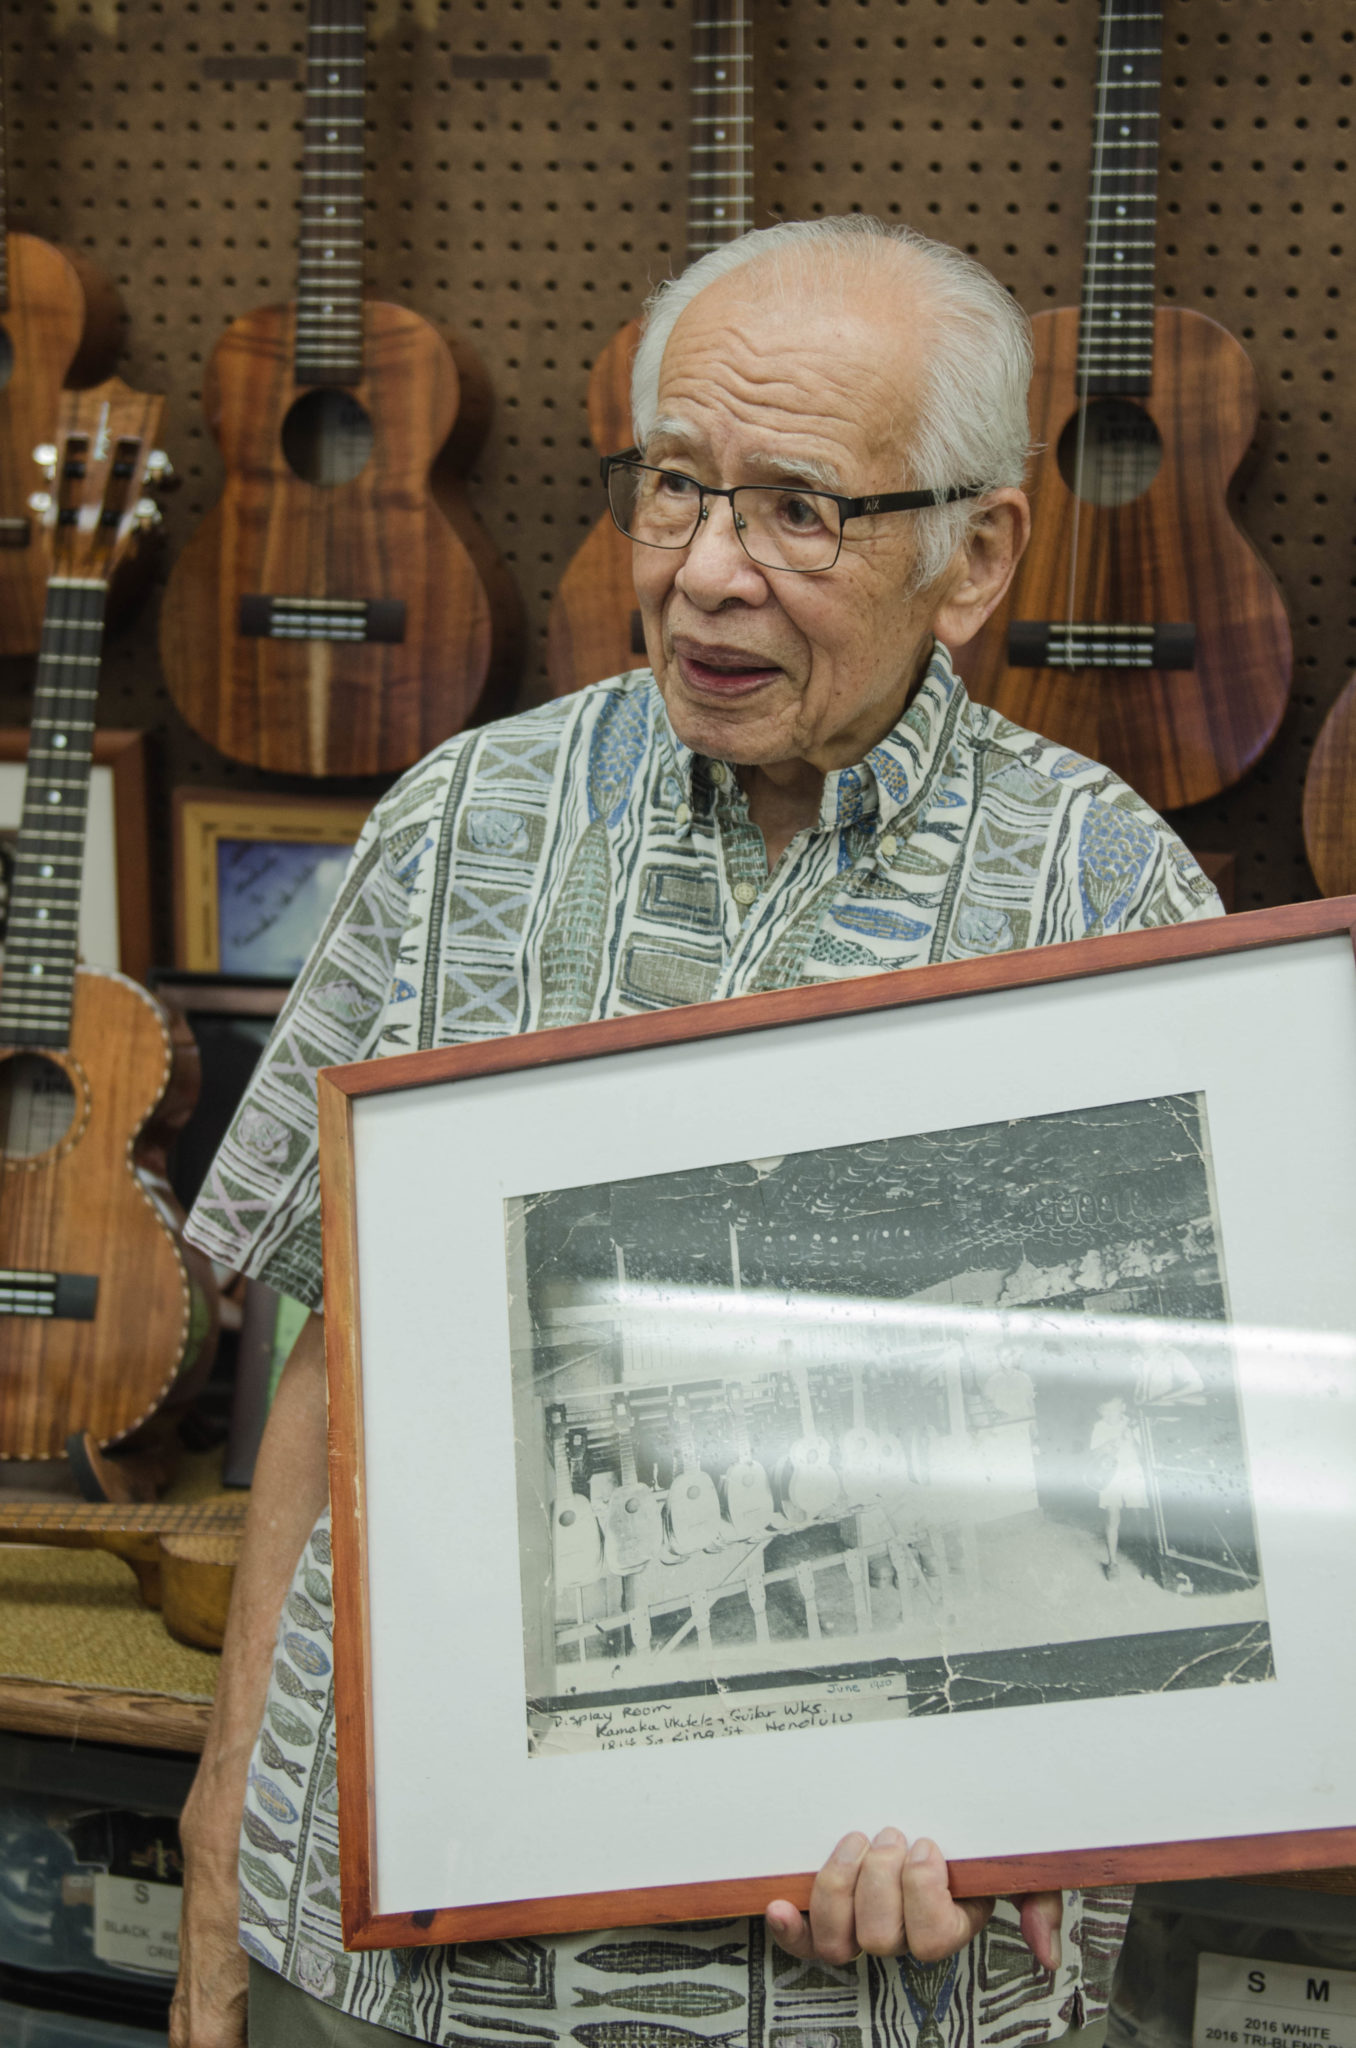 At the Hawaii guitar shop Kamaka Ukulele Hawaii small guitars are not only being sold, but stories are told by the very own Fred Kamaka.